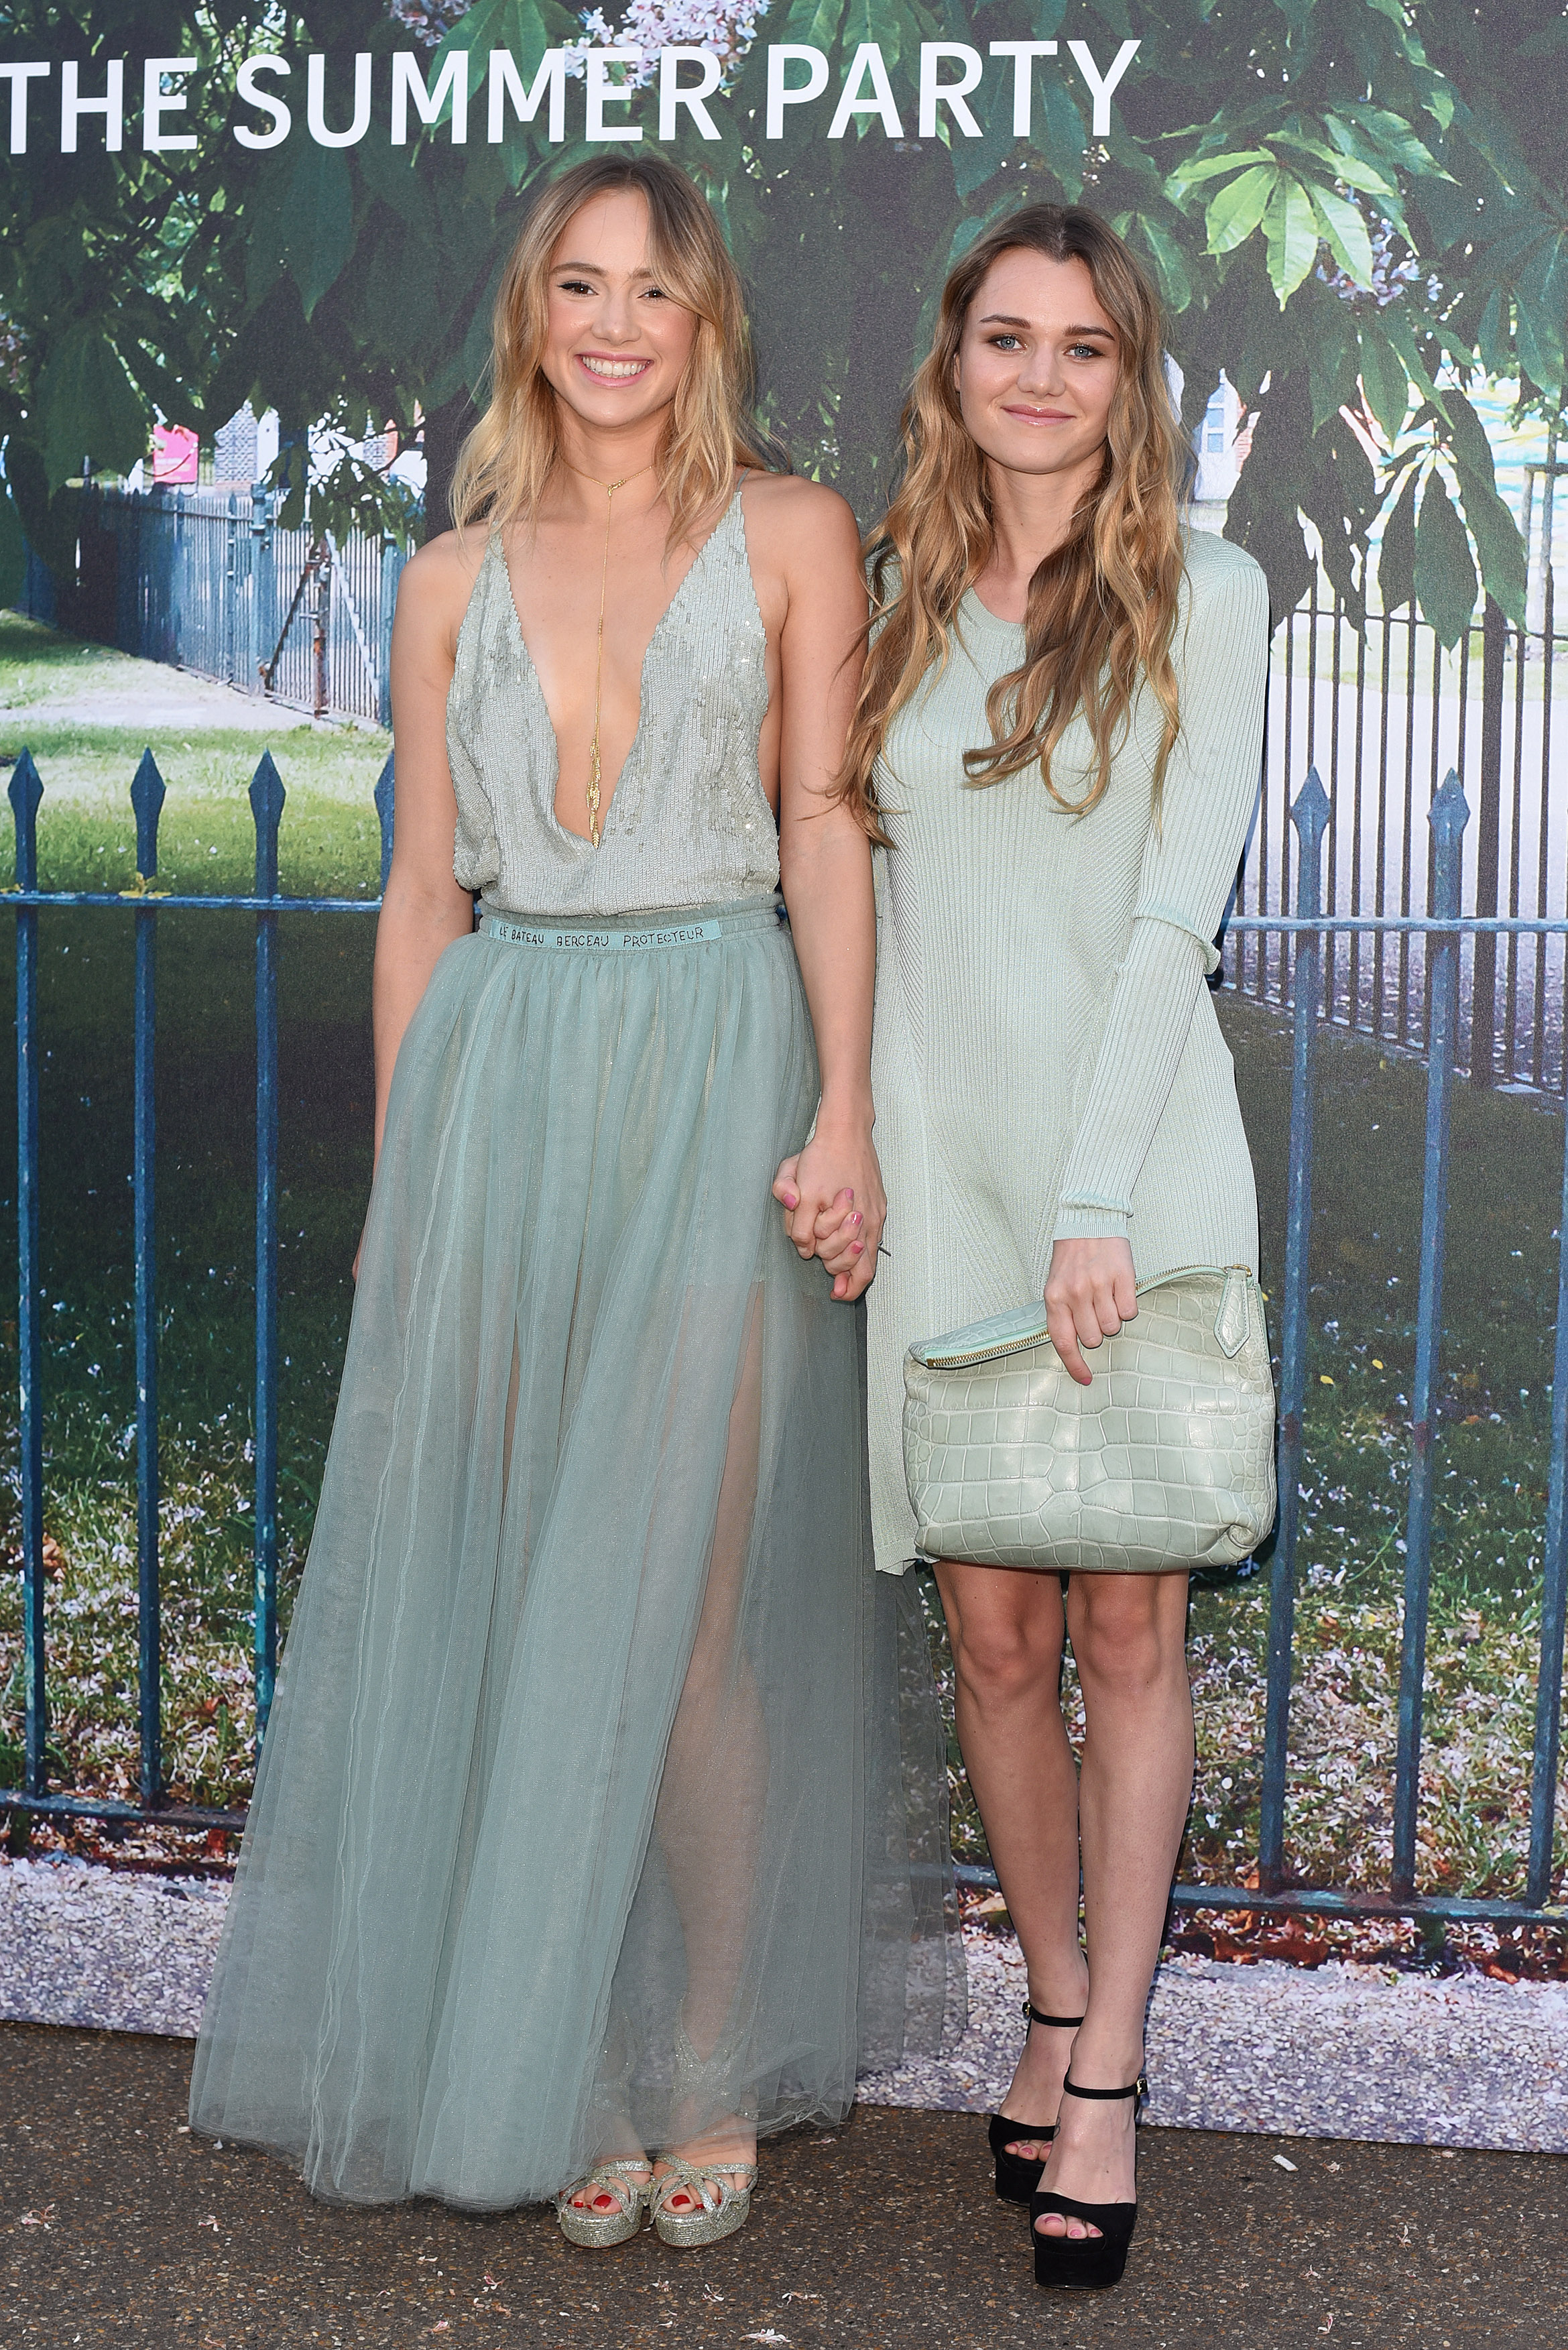 Serpentine Gallery summer party held in Kensington Gardens - Arrivals  Featuring: Suki Waterhouse, Immy Waterhouse Where: London, United Kingdom When: 02 Jul 2015 Credit: Daniel Deme/WENN.com